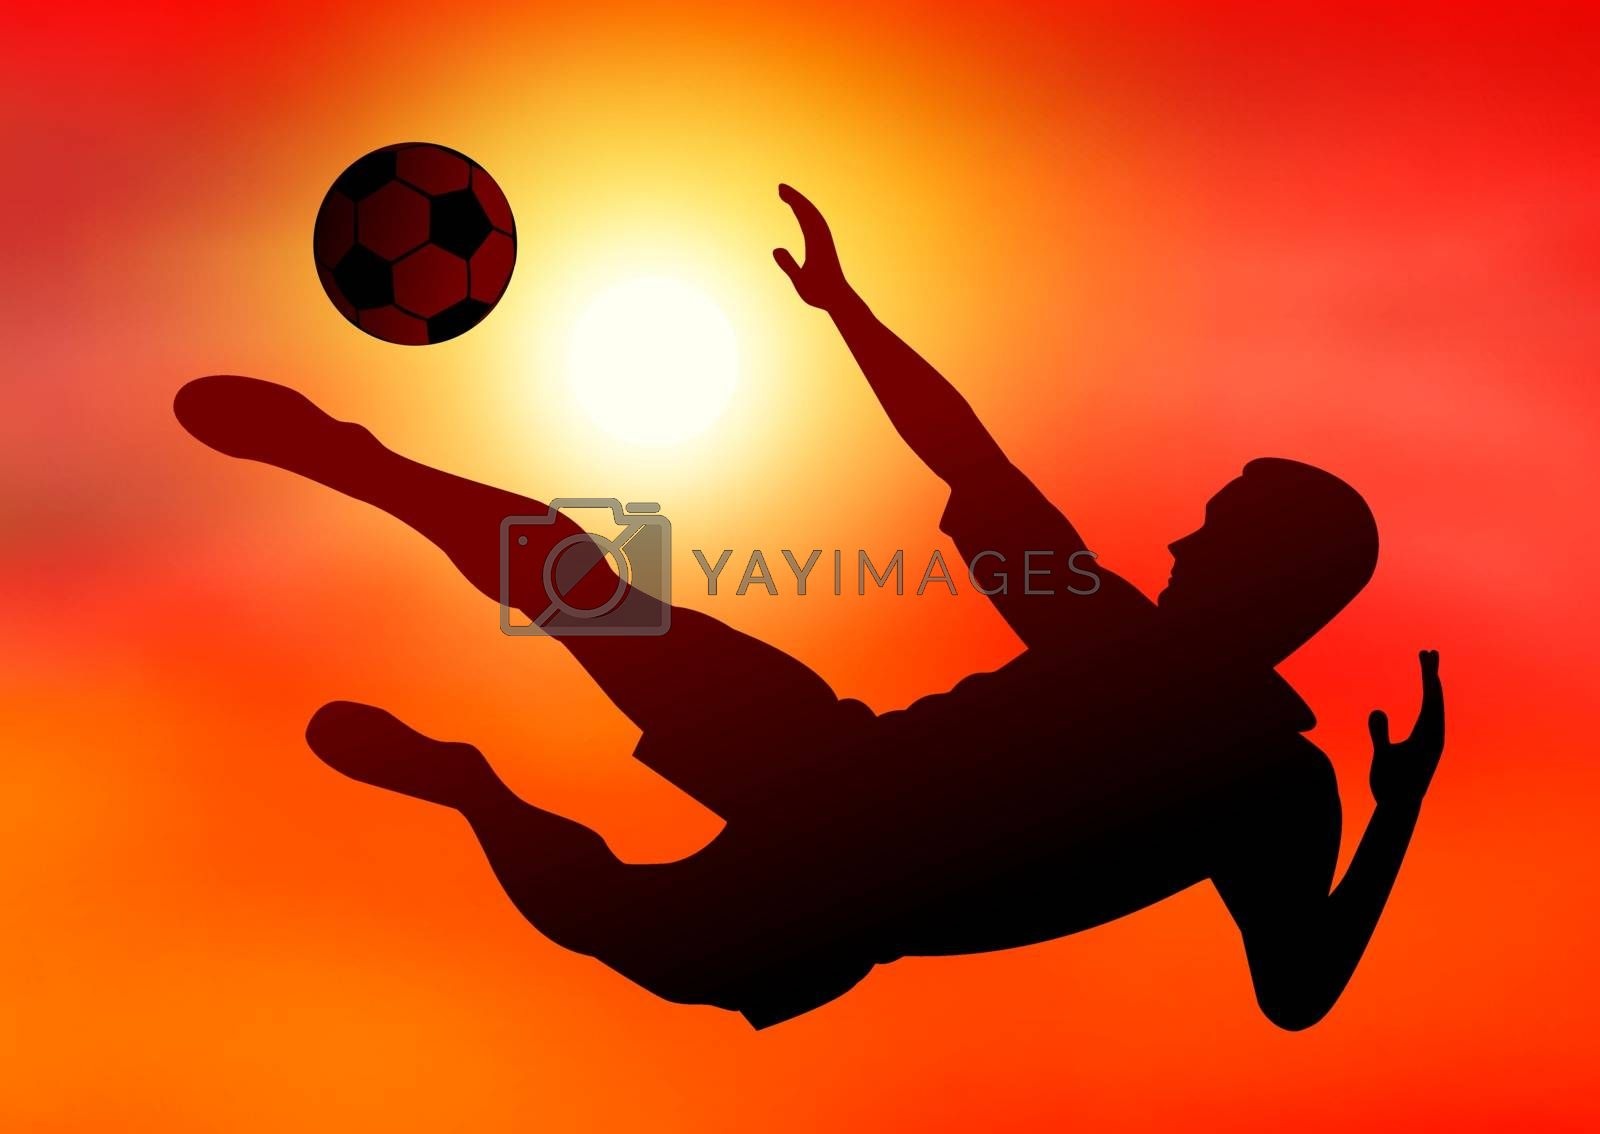 Silhouette of a football player with the ball on the background of the sunset. Footballer kicks the ball. Active athlete with the ball.